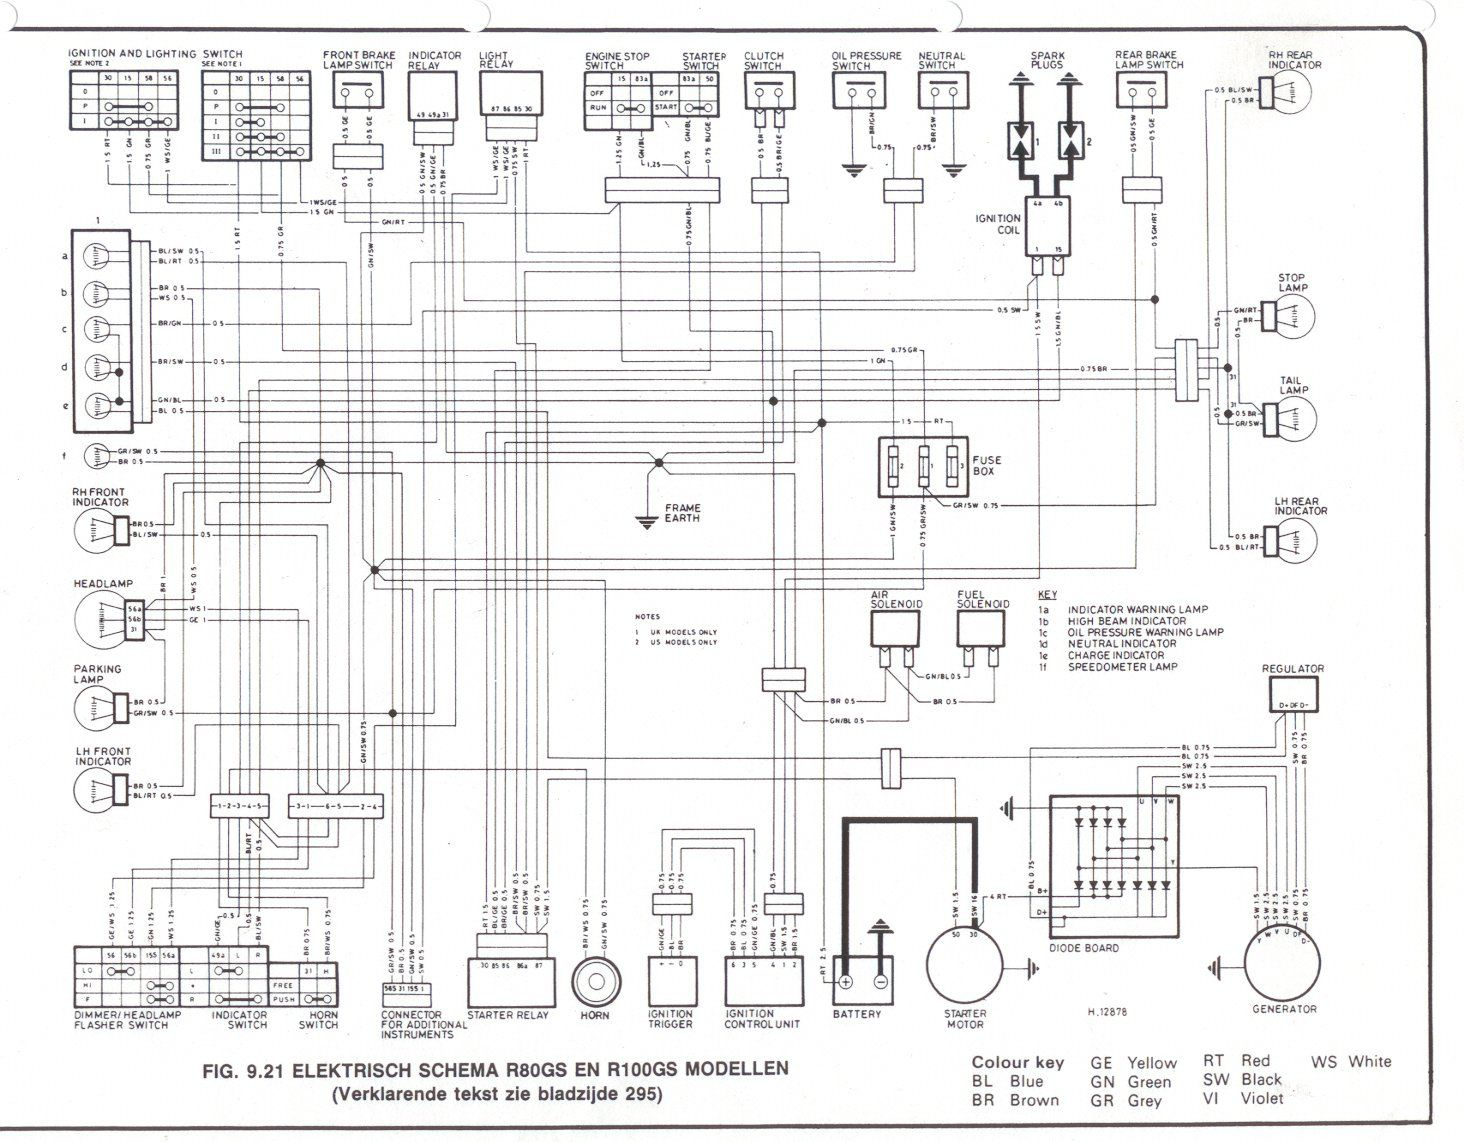 Bmw R1150r Electrical Wiring Diagram 3 Electrical Wiring Diagram Electrical Wiring Bmw